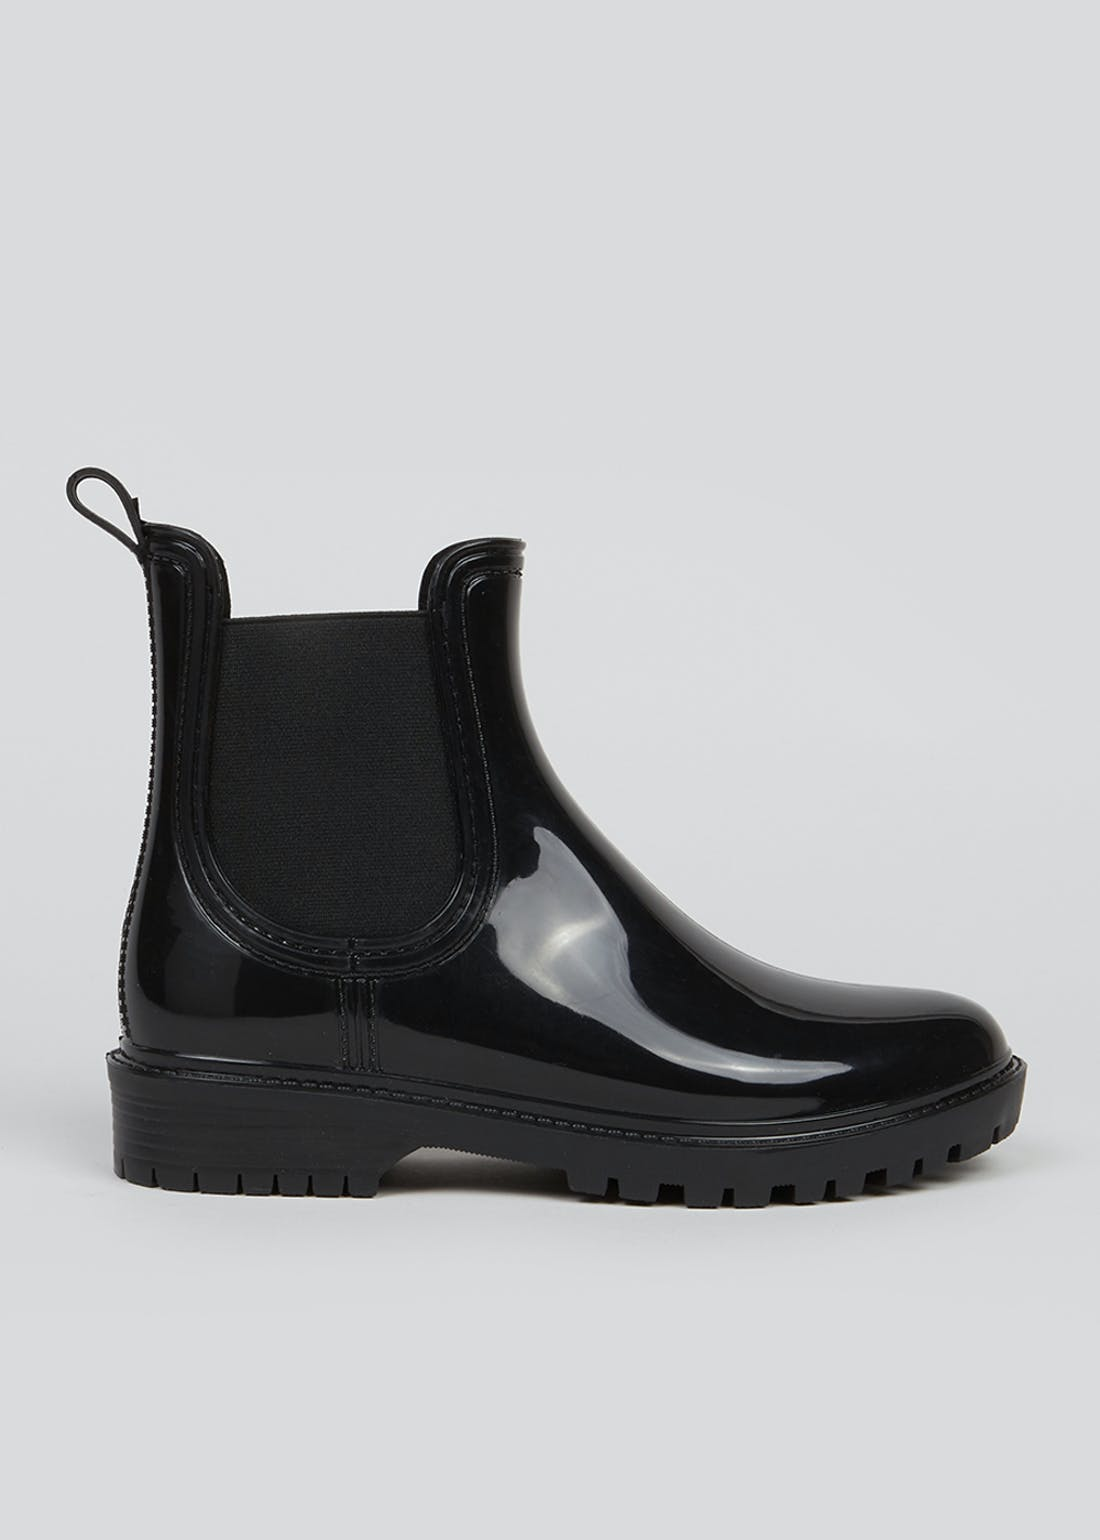 Black Chelsea Welly Boots